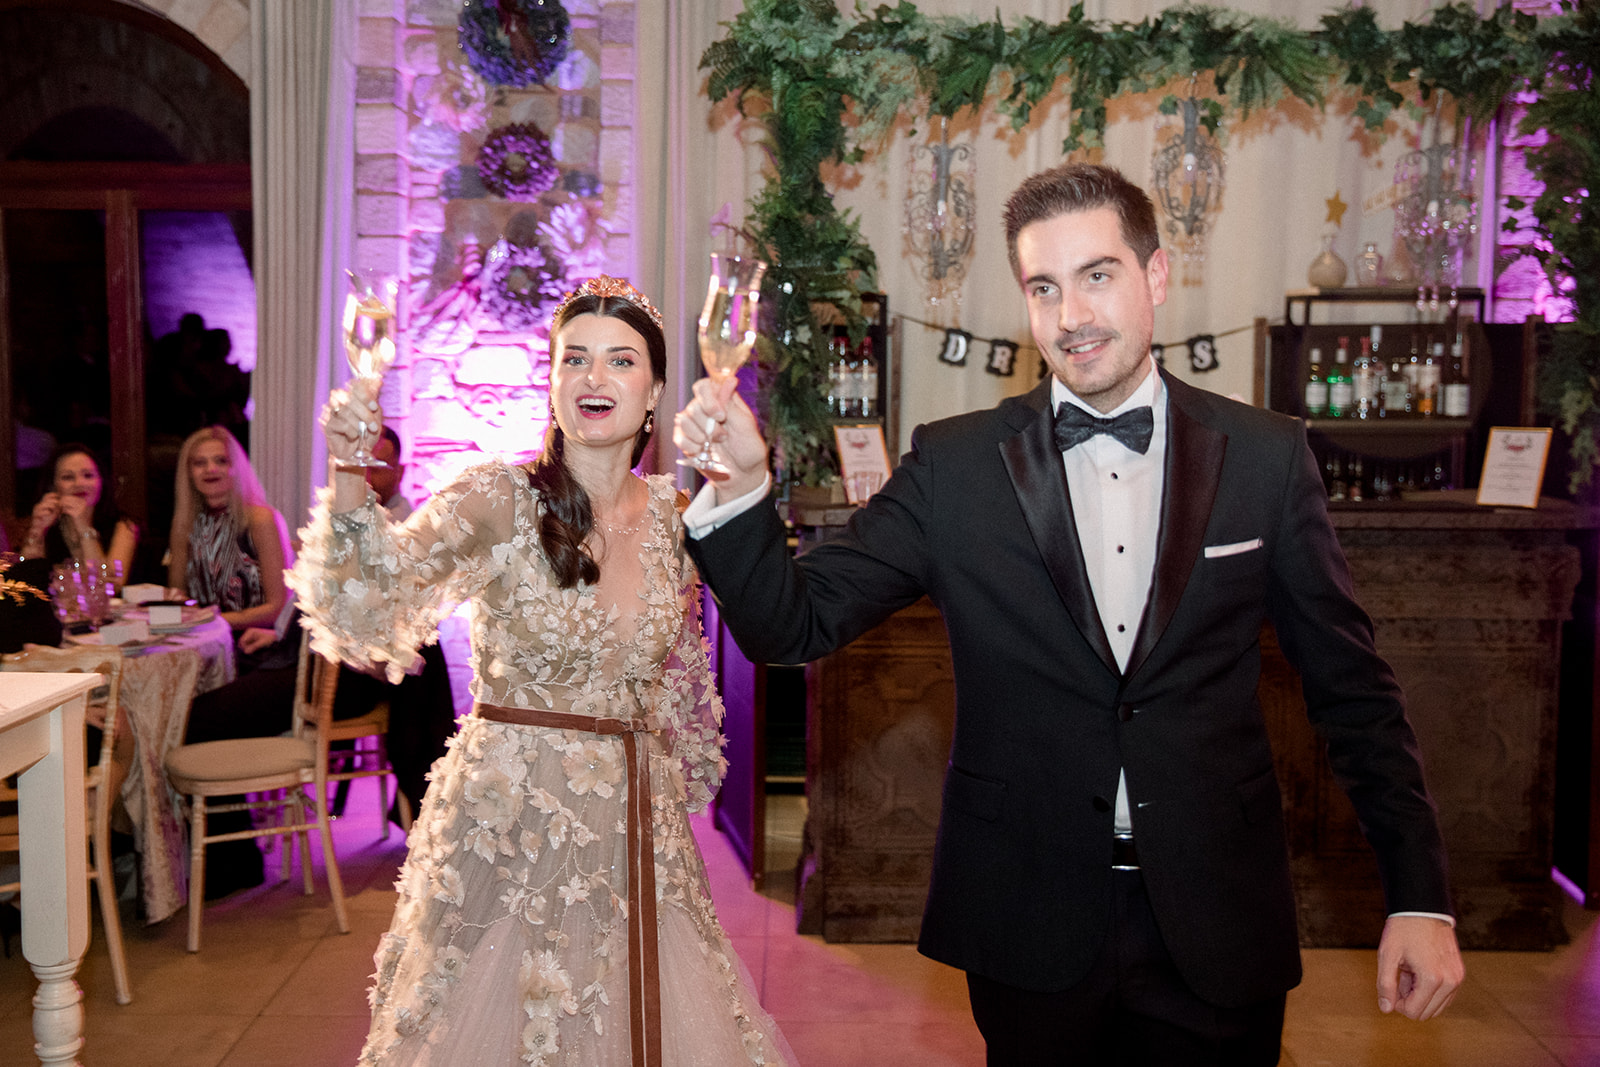 The wonderful weddinng of Nikos and Evangelia gallery image 12